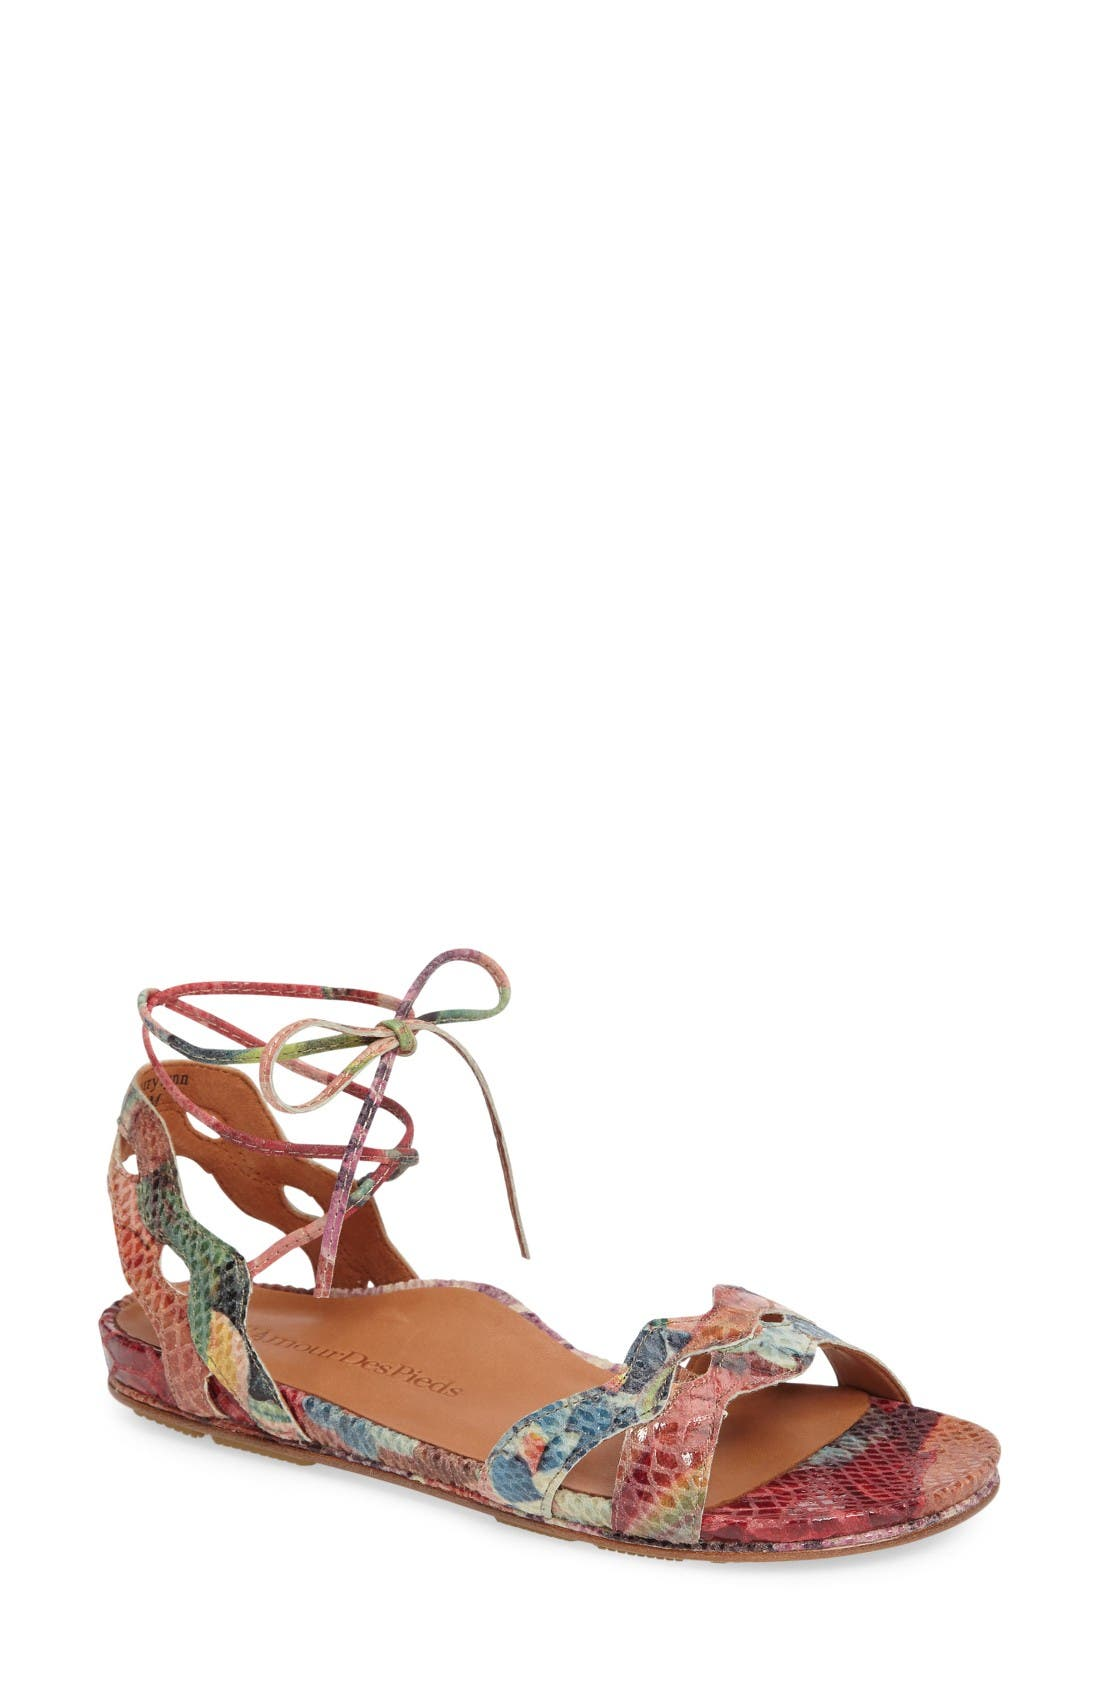 Darrylynn Wraparound Lace-Up Sandal,                             Main thumbnail 1, color,                             Bright Multi Printed Leather